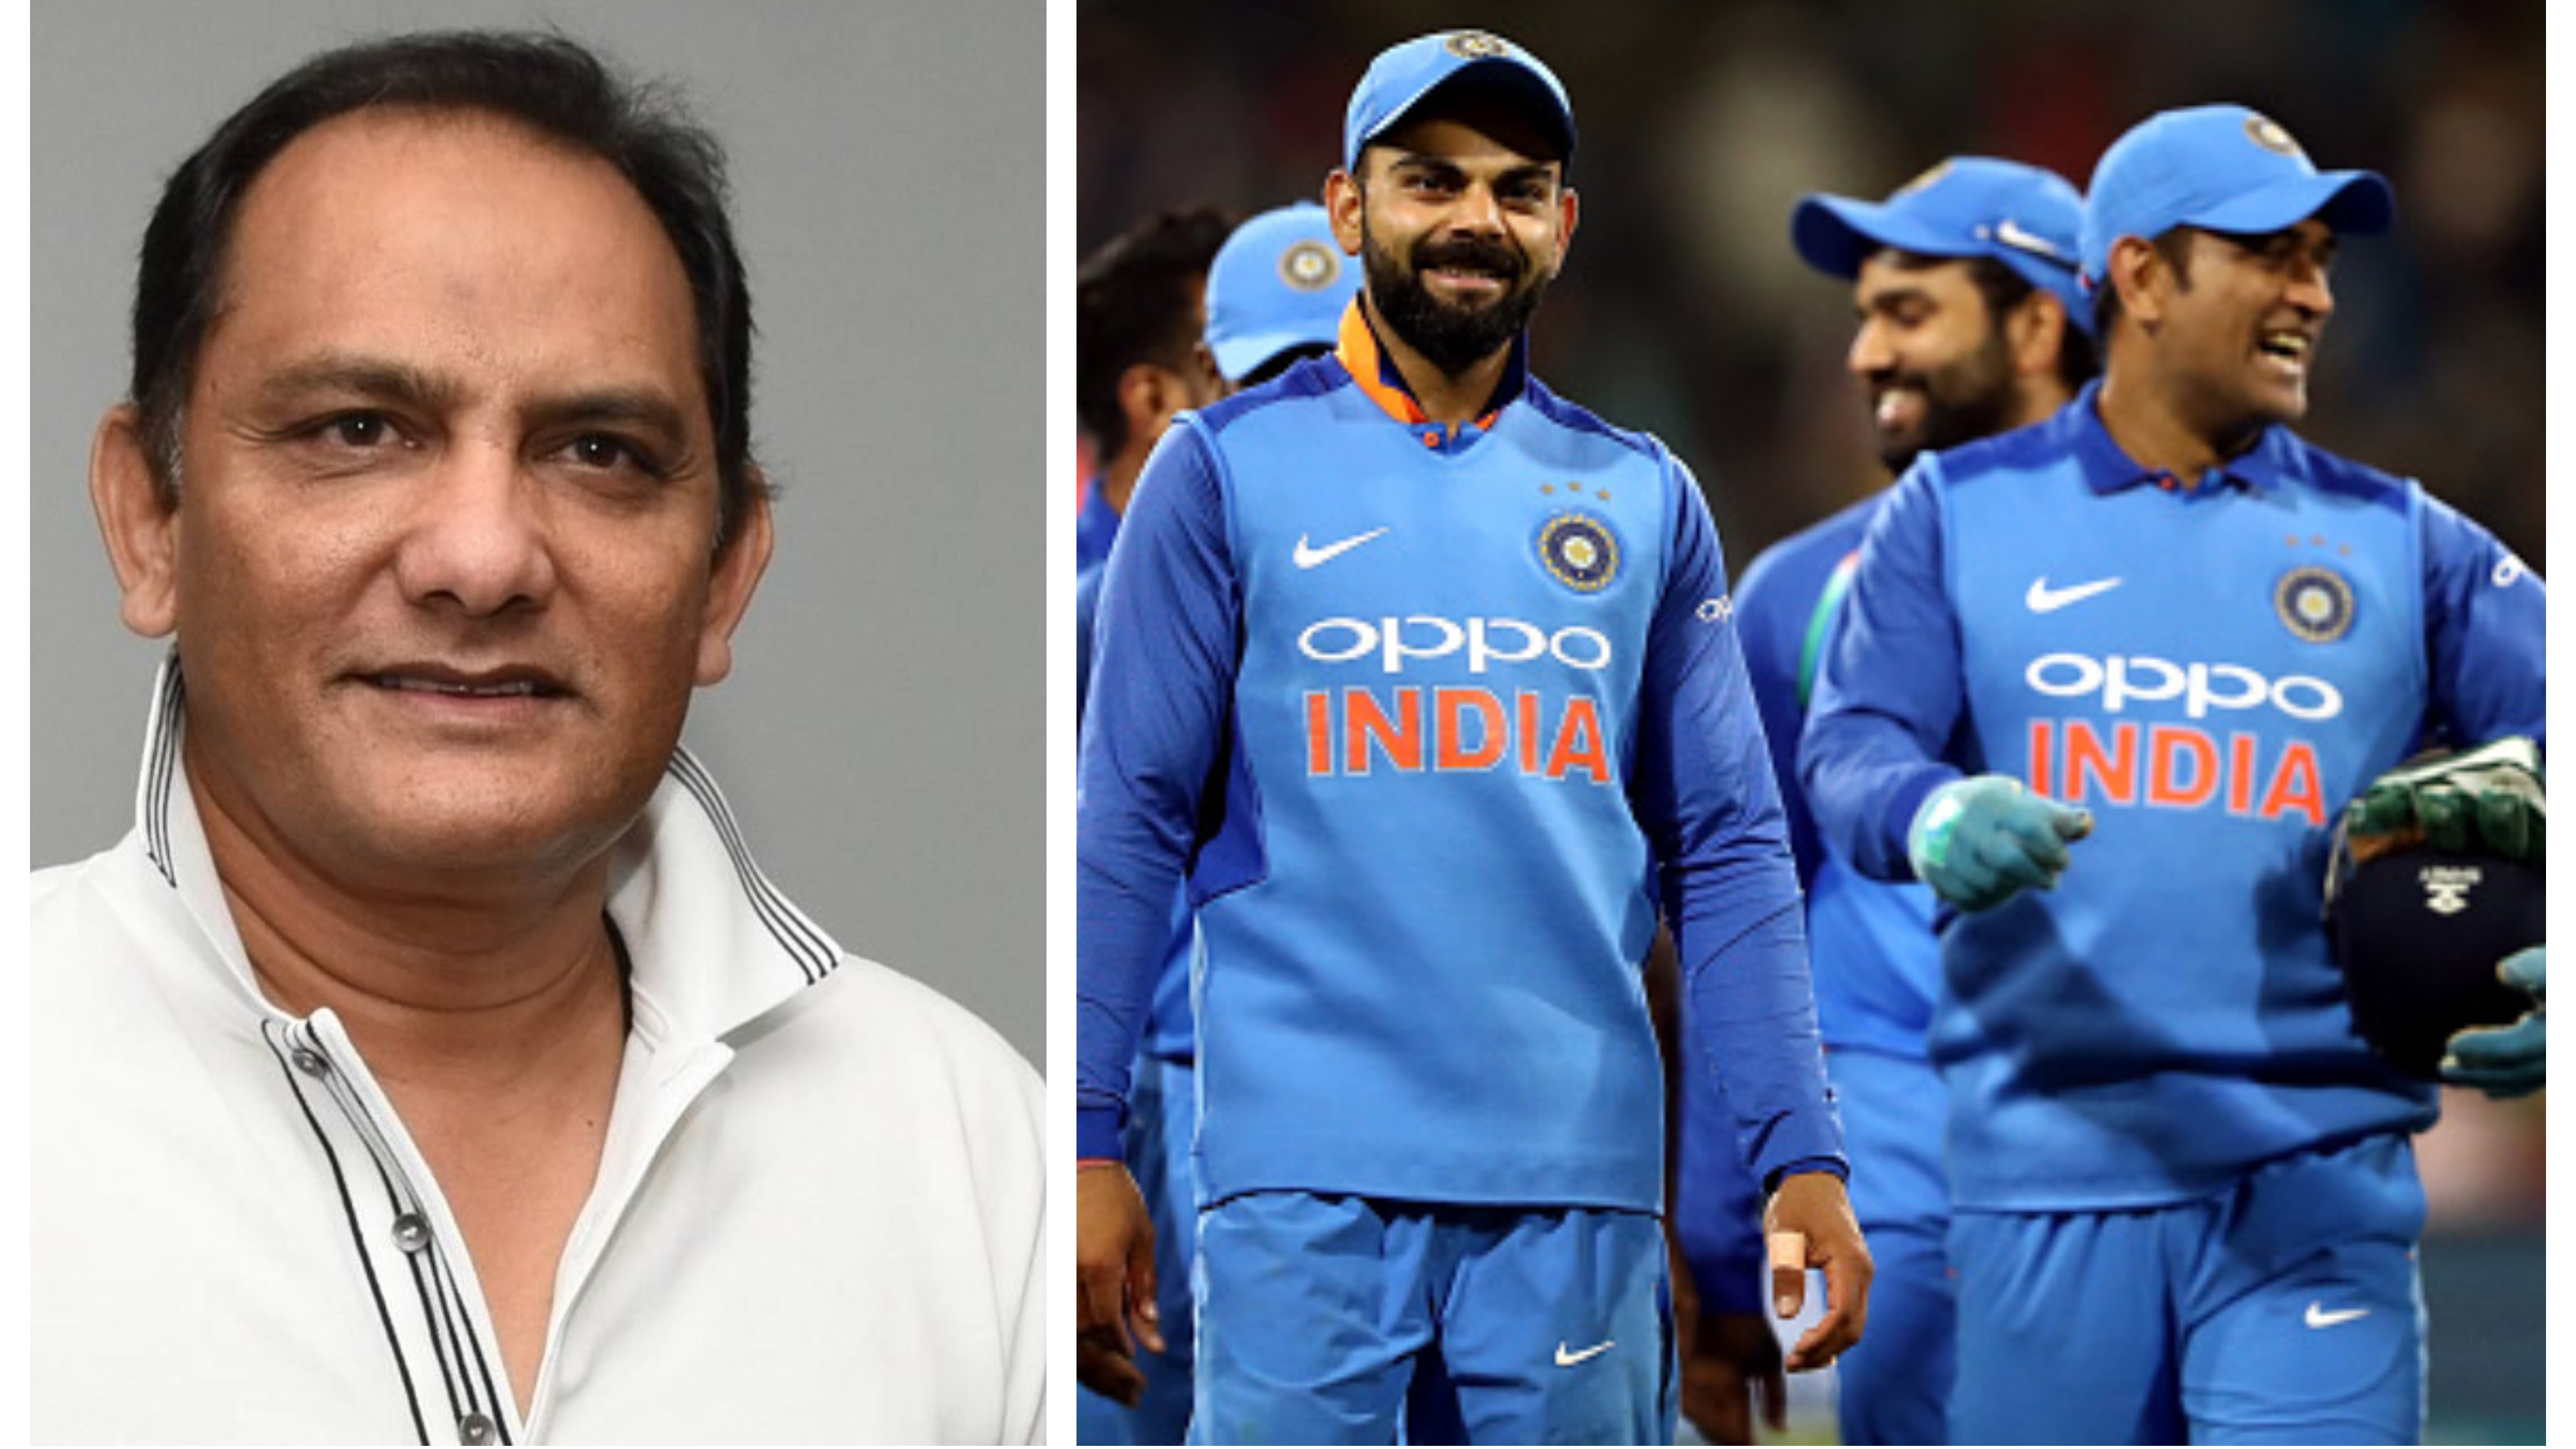 NZ v IND 2019: Mohammad Azharuddin hails Team India's stellar performance in the second ODI